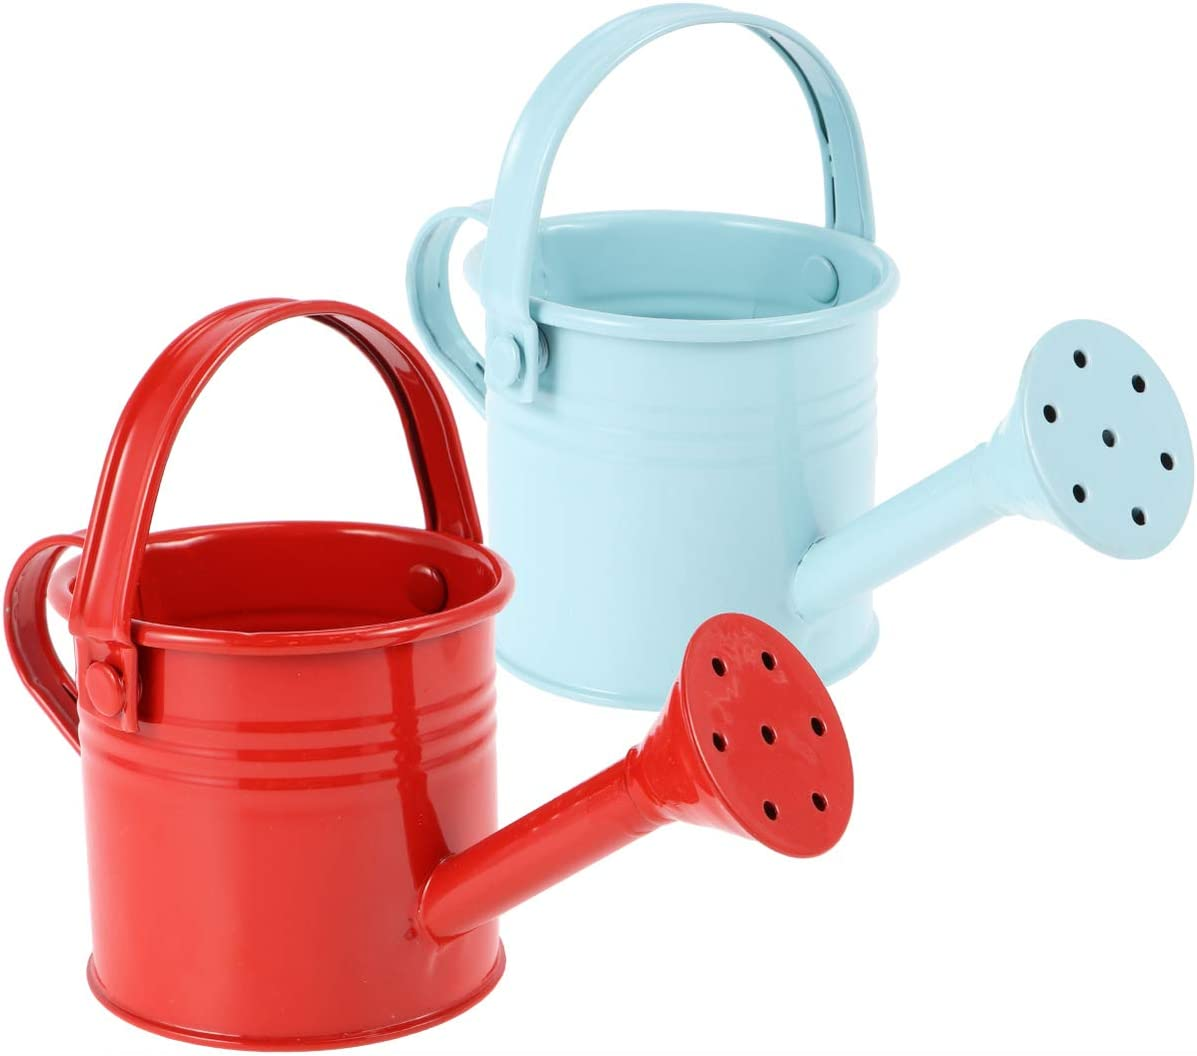 Hemoton Metal Watering Can, 2pcs Kids Watering Can, Children Garden Watering Bucket Iron Watering Tin Can Sprinkling Kettle Kettle for Garden Home Plants Flower (5.9x2.95x2.95 Inches)